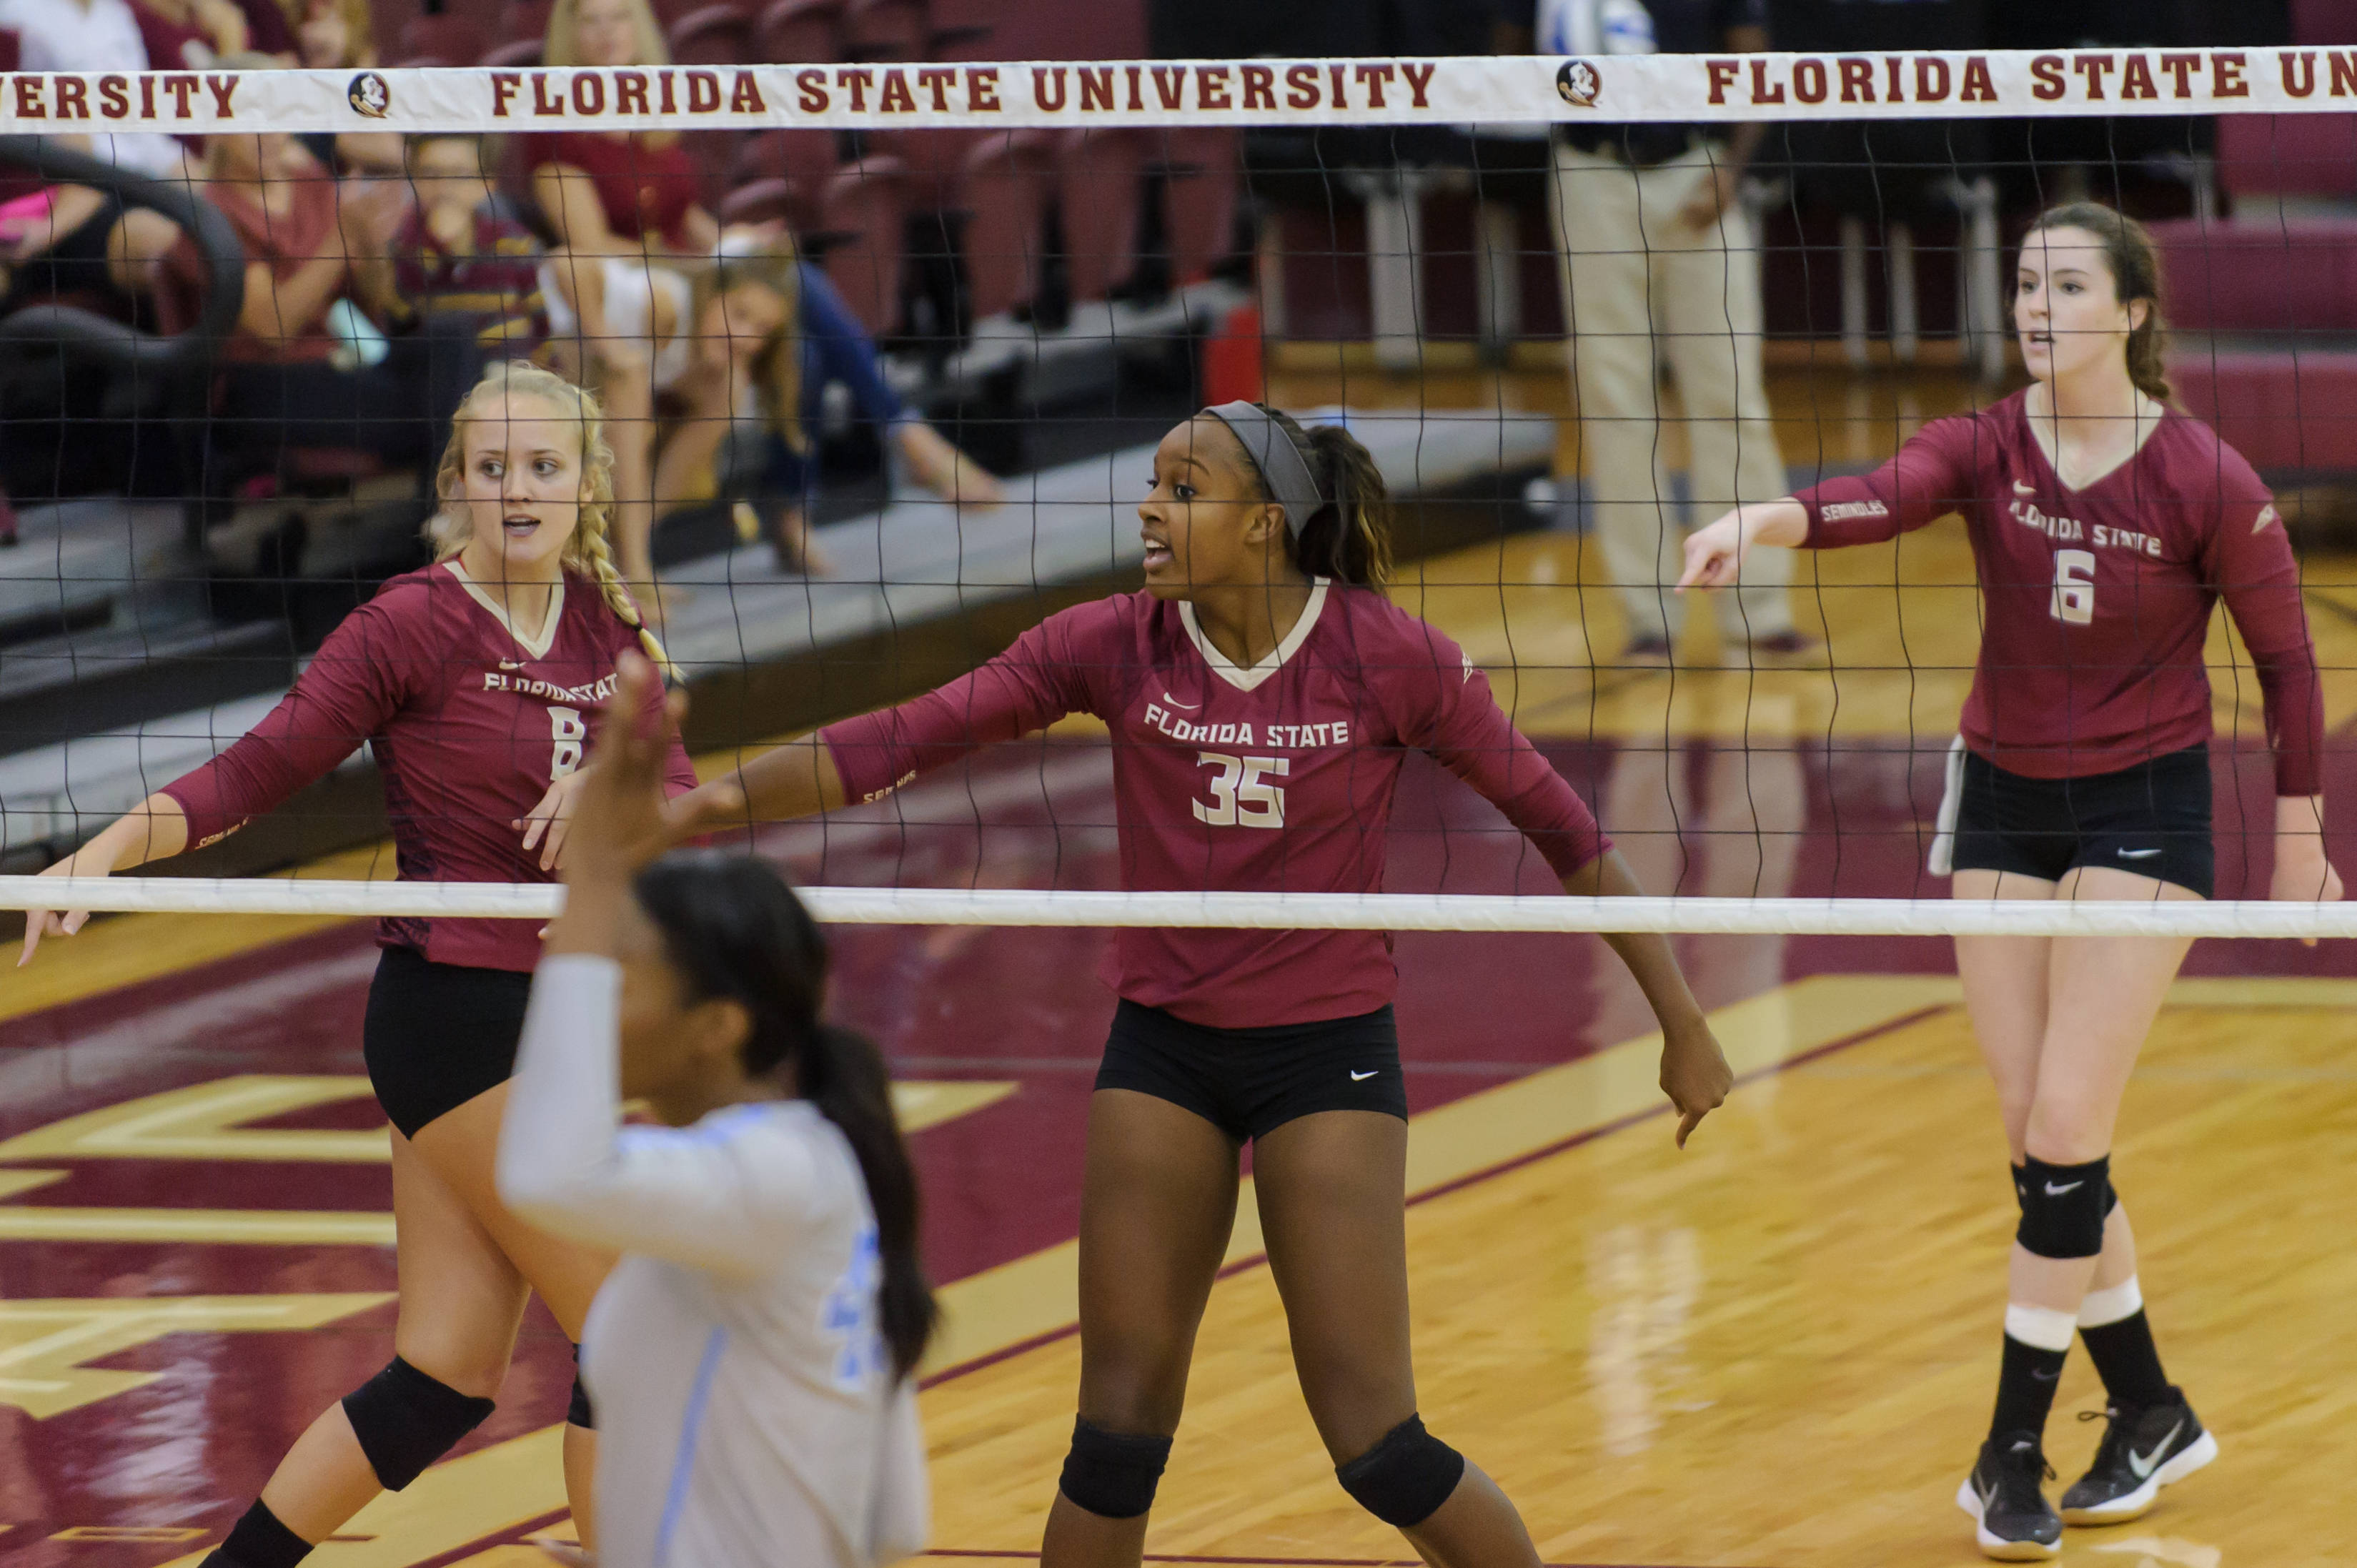 North Carolina at Florida State